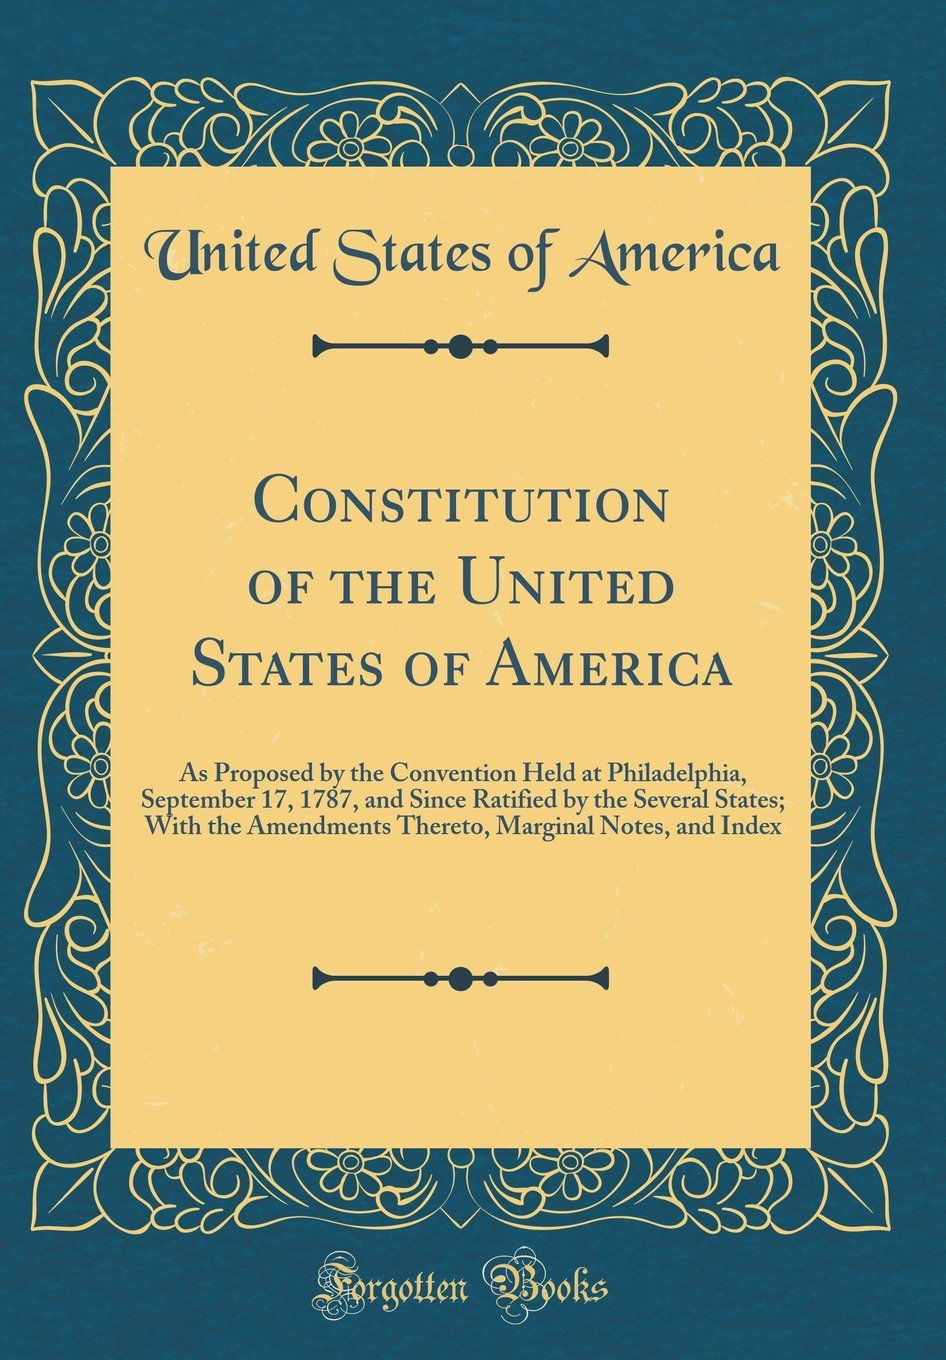 Constitution of the United States of America: As Proposed by the Convention Held at Philadelphia, September 17, 1787, and Since Ratified by the ... Marginal Notes, and Index (Classic Reprint) pdf epub